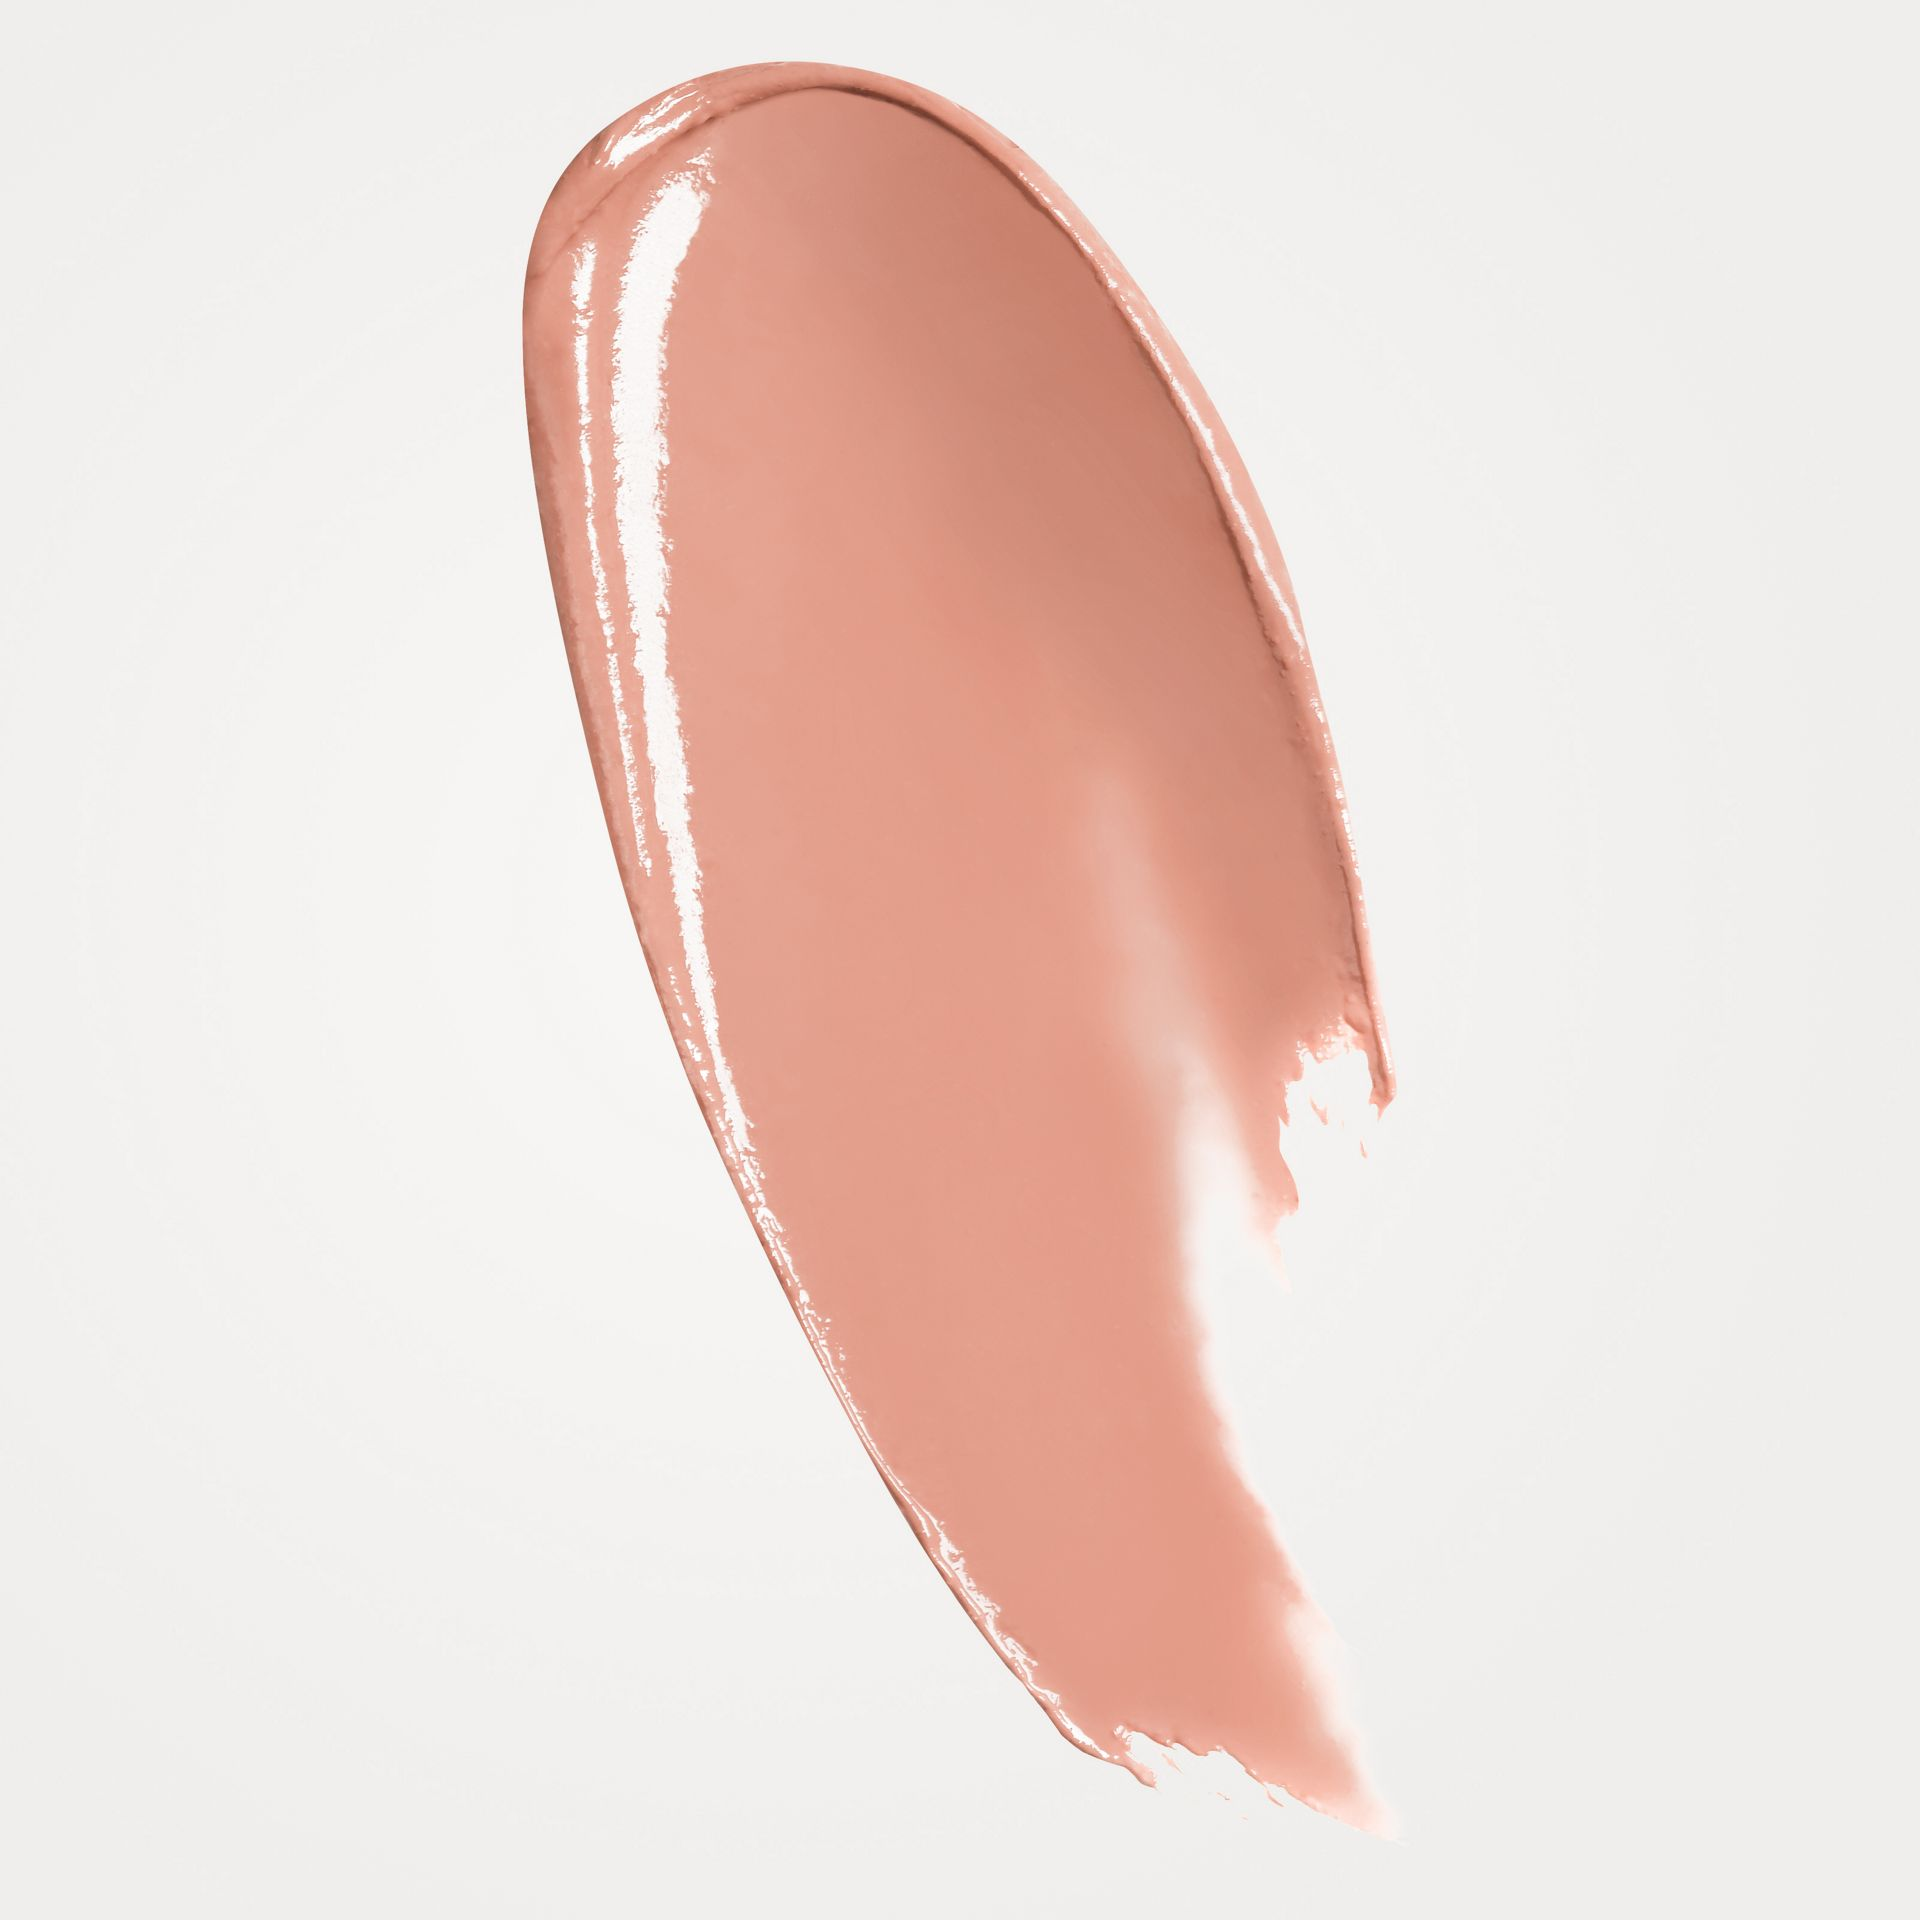 Nude blush 501 Burberry Full Kisses - Nude Blush No.501 - immagine della galleria 2